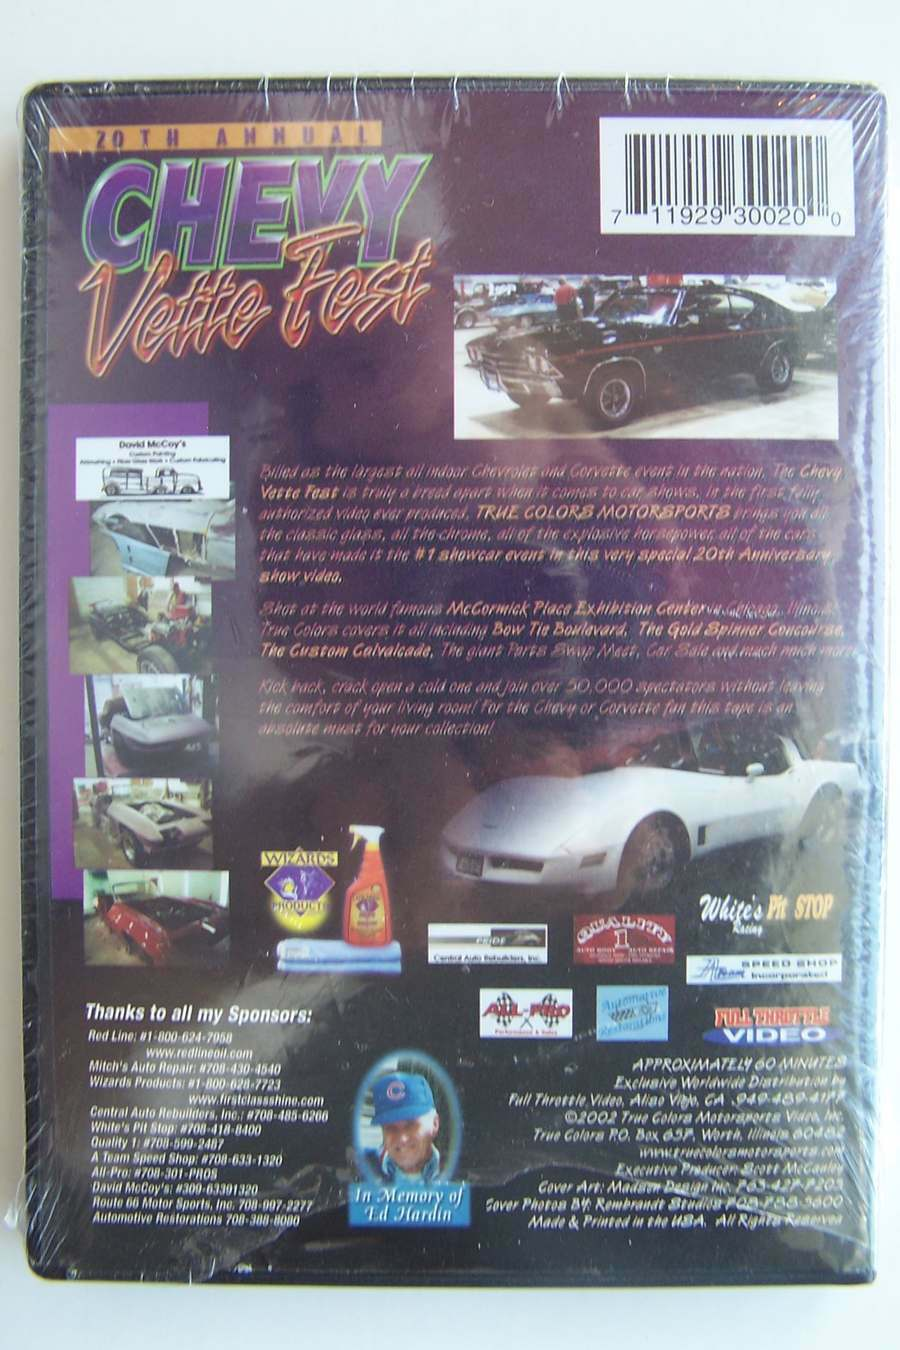 20th Annual Chevy Vette Fest DVD New & Sealed